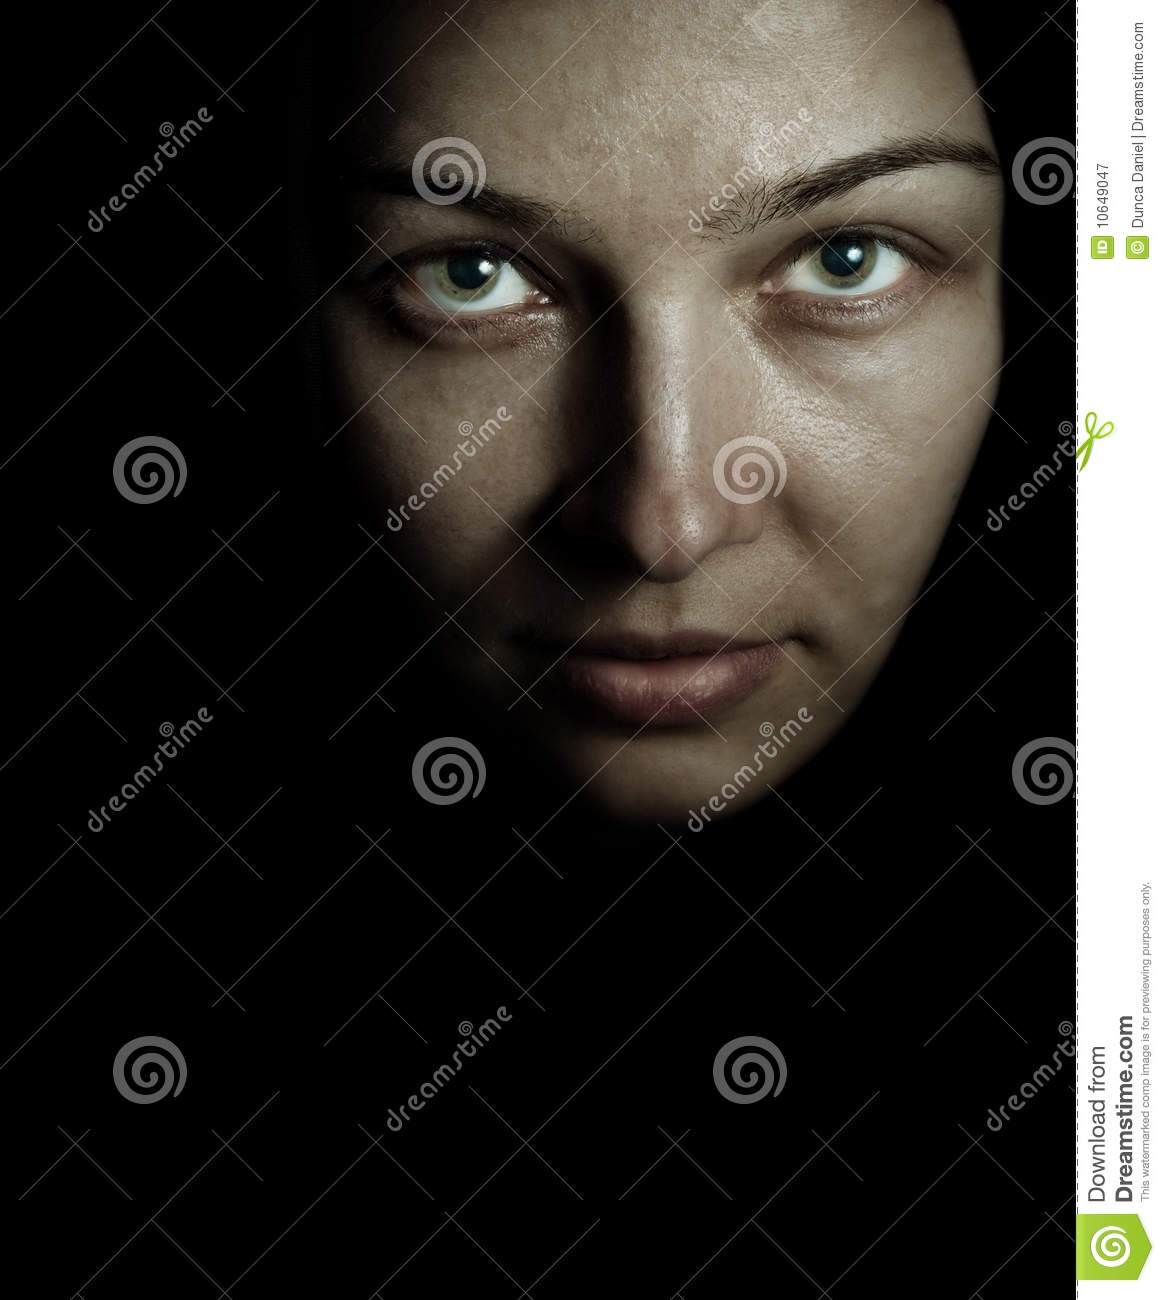 Face and eyes of spooky mystery woman in the dark - face-eyes-spooky-mystery-woman-dark-10649047